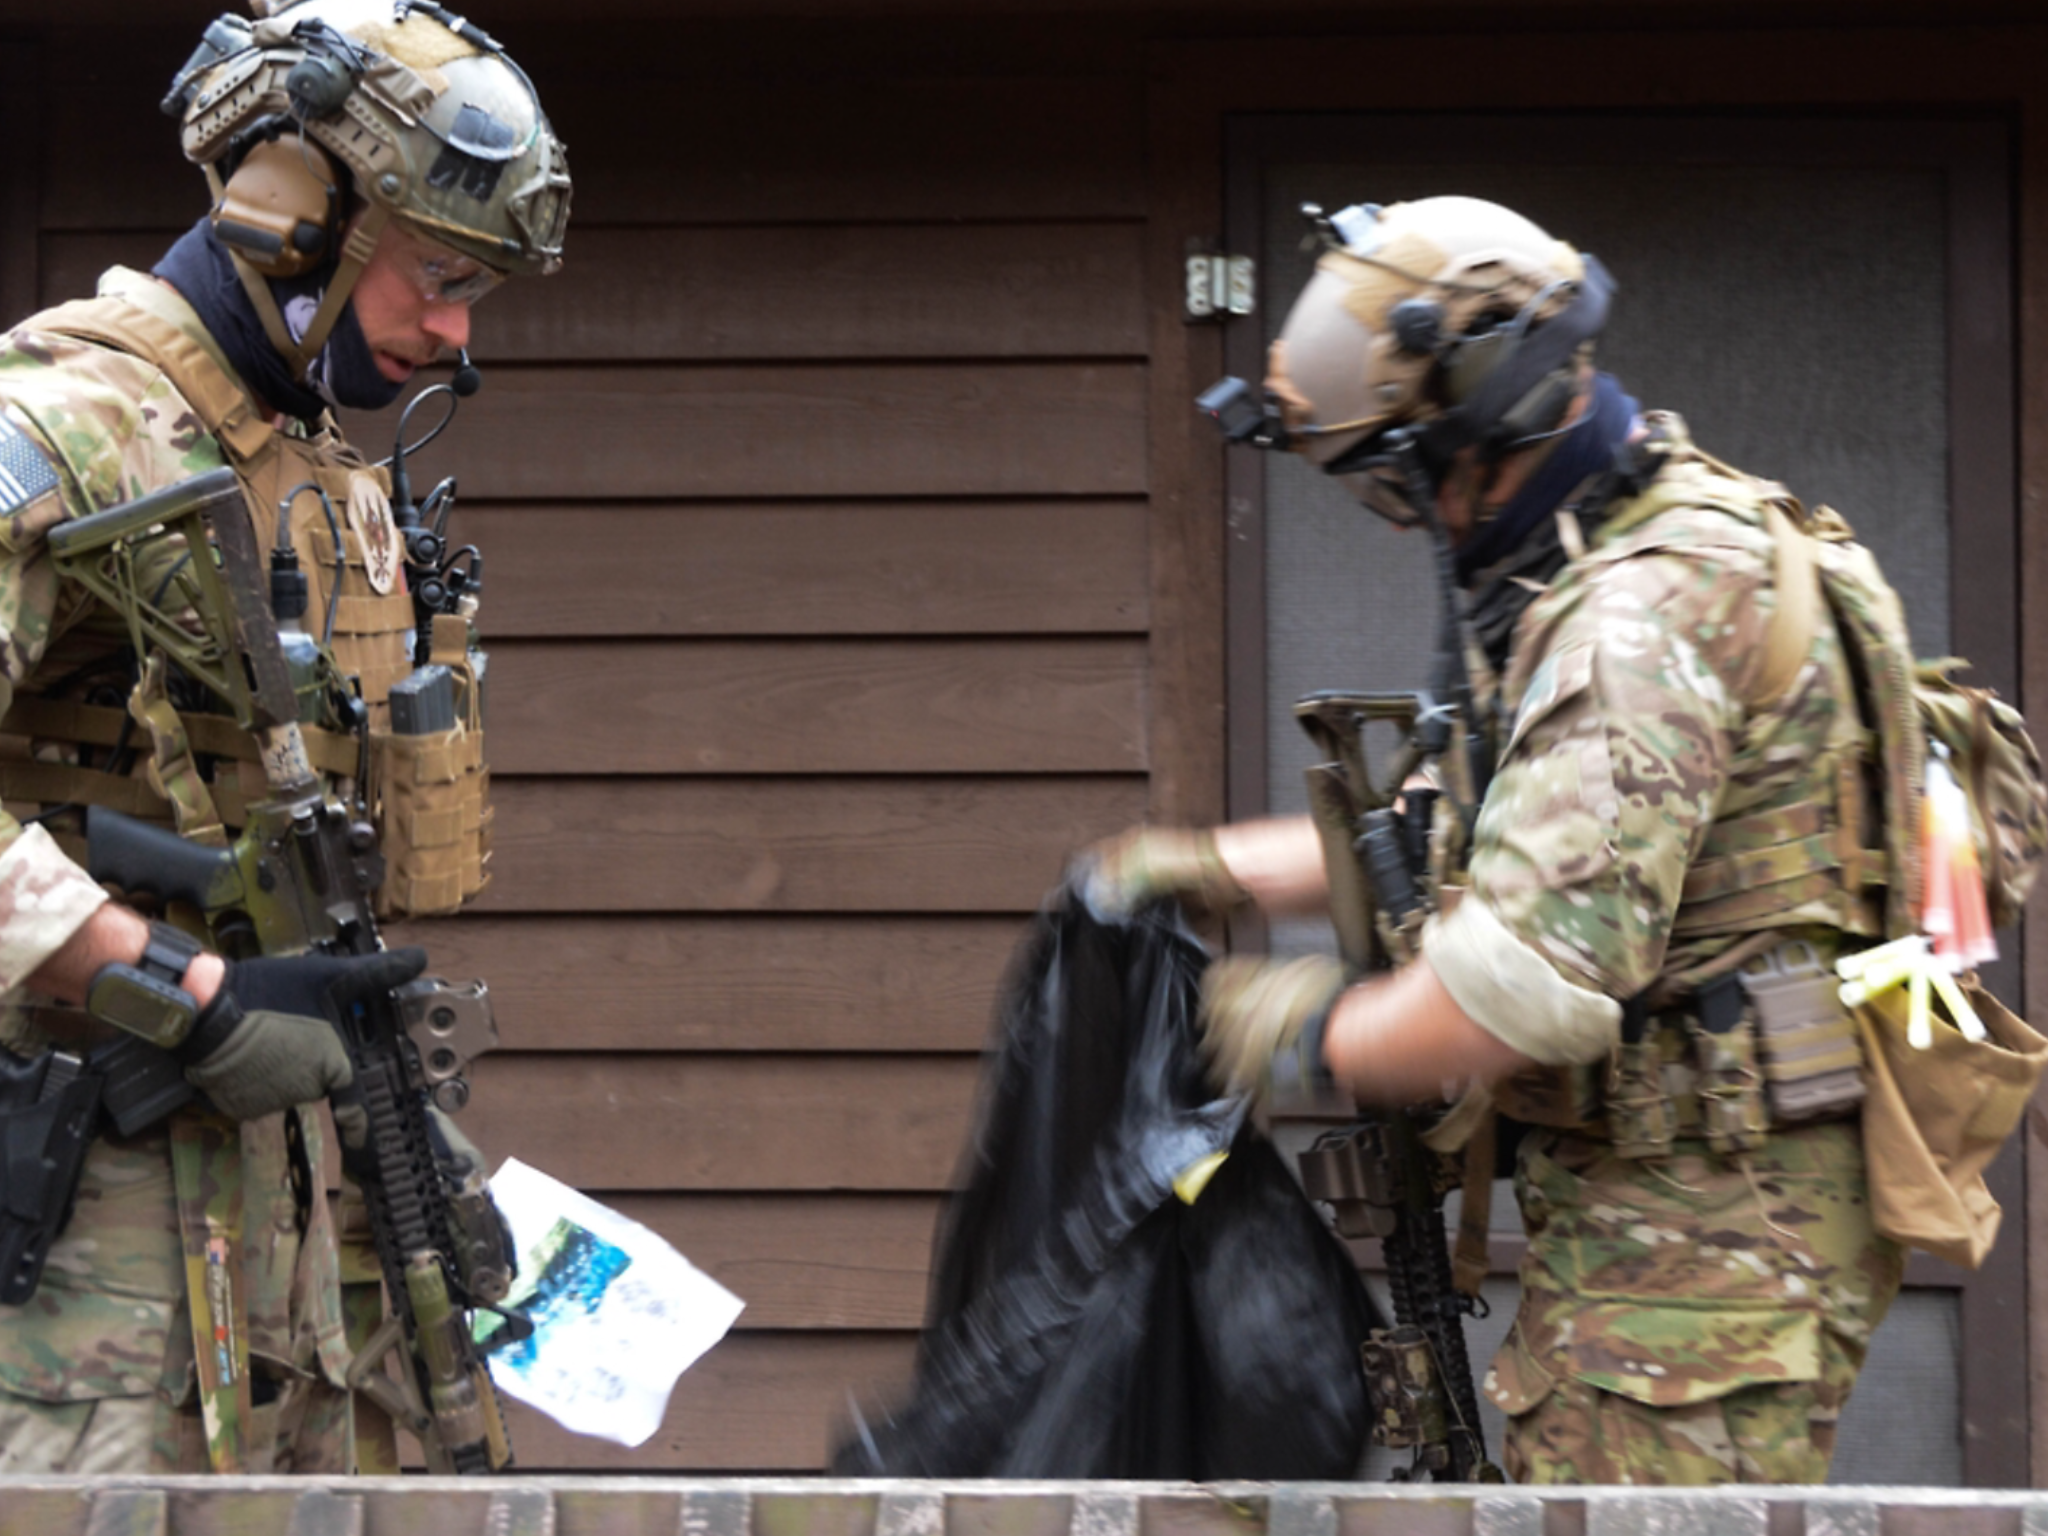 Estonian Special Forces, alongside members with the 10th